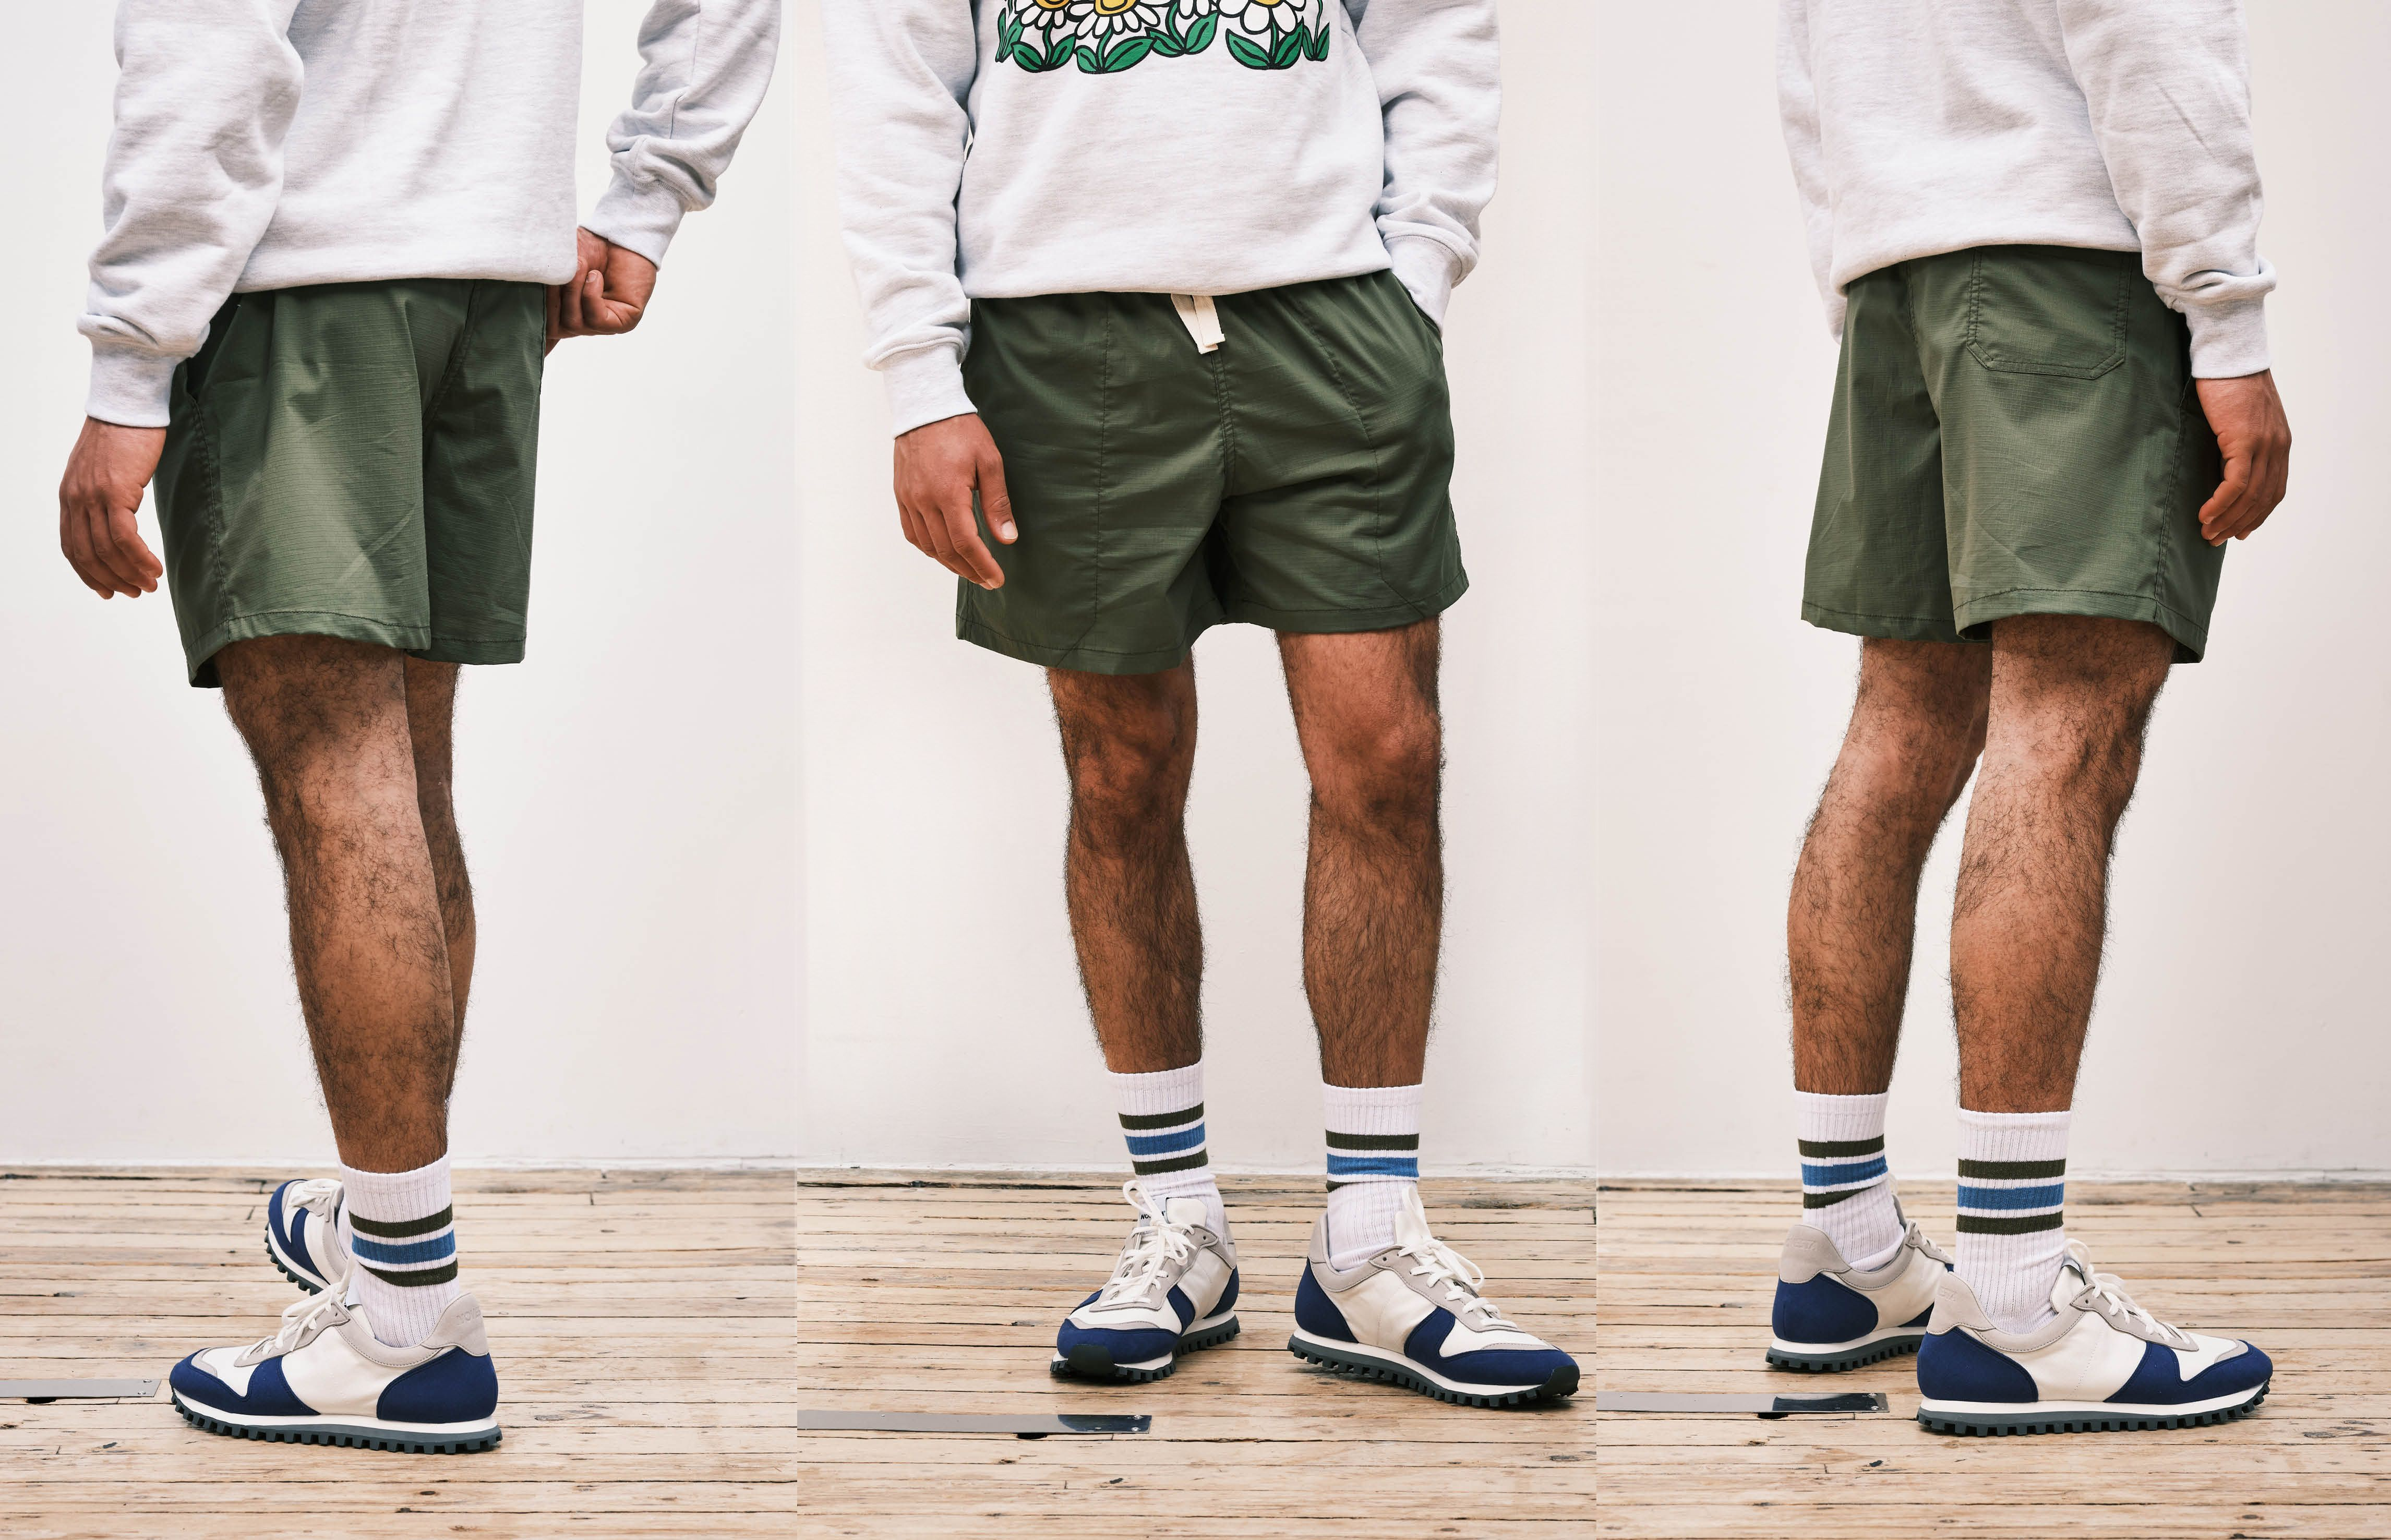 How shorts should fit if you have short legs